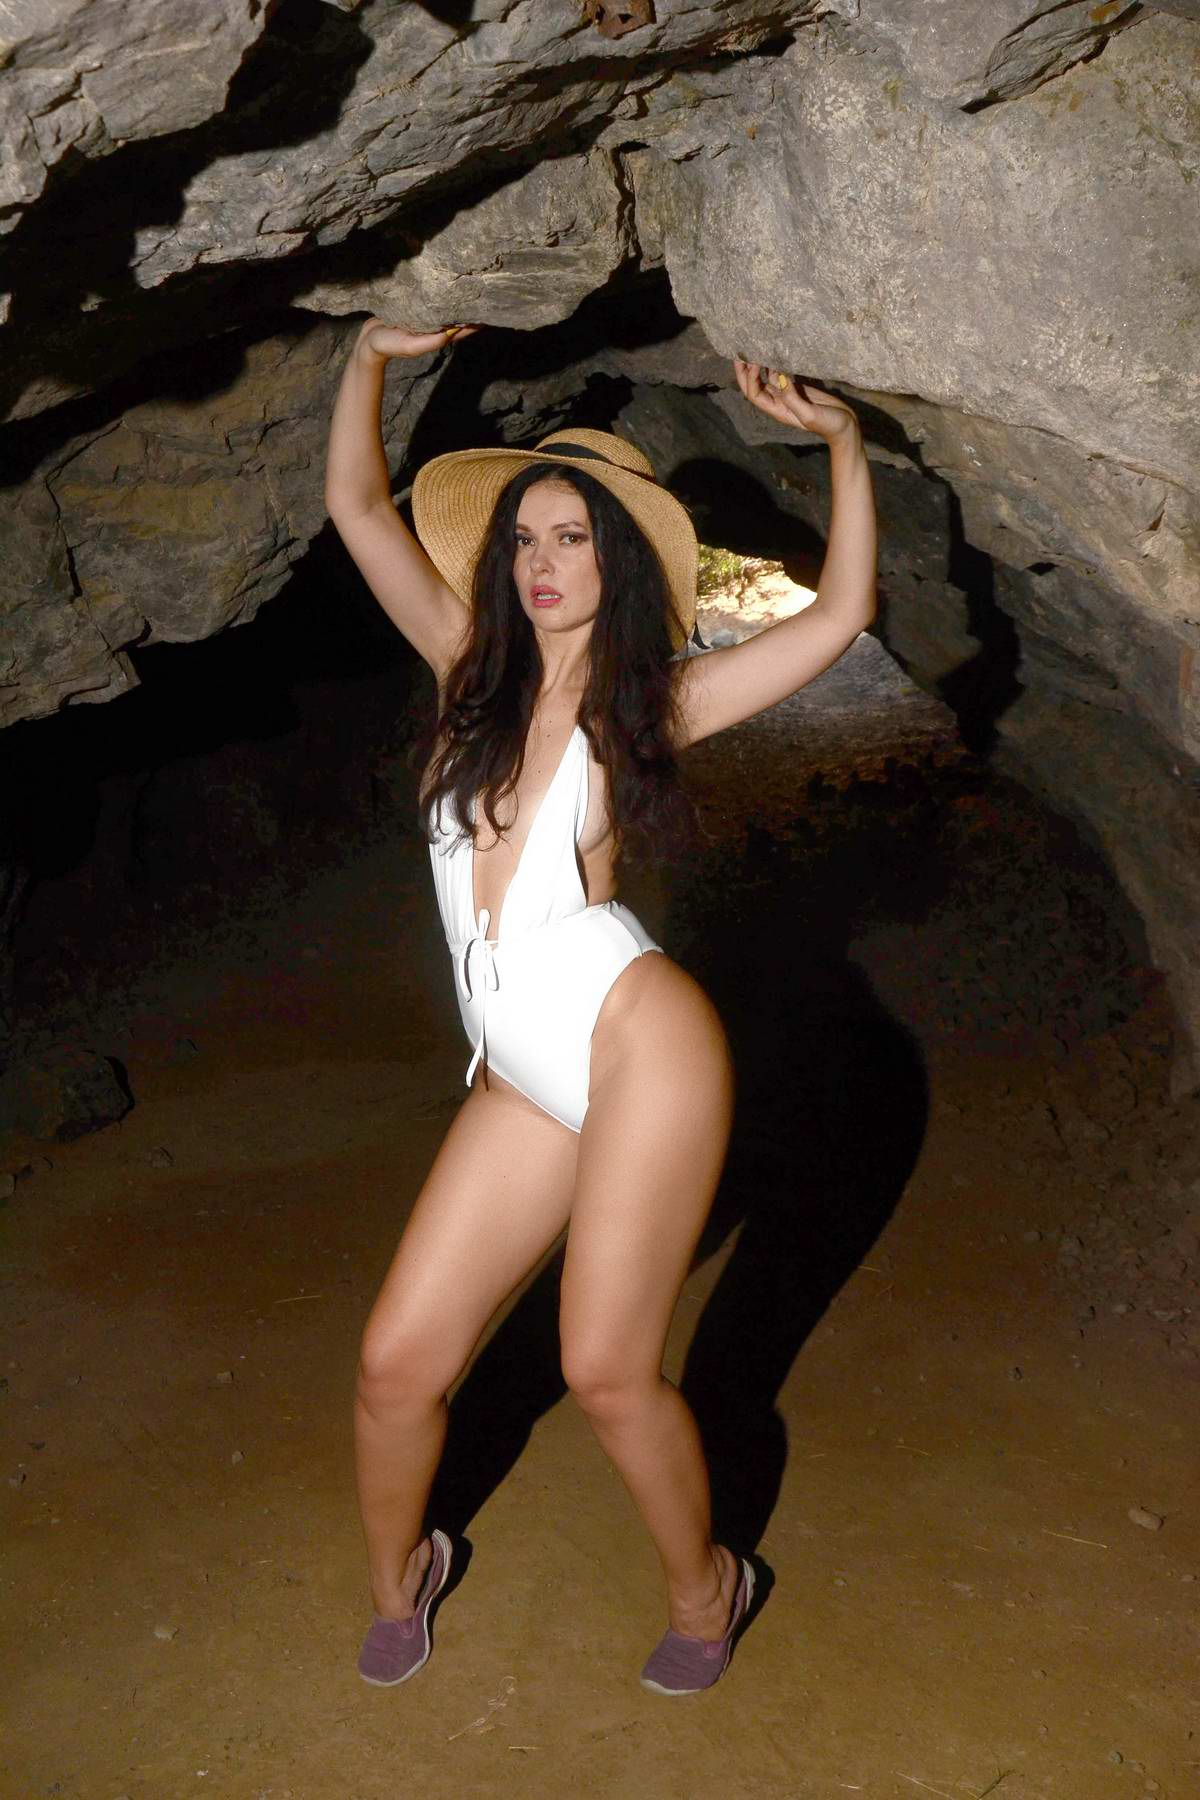 Natasha Blasick sports a white swimsuit and sunhat during a cave photoshoot in Los Angeles